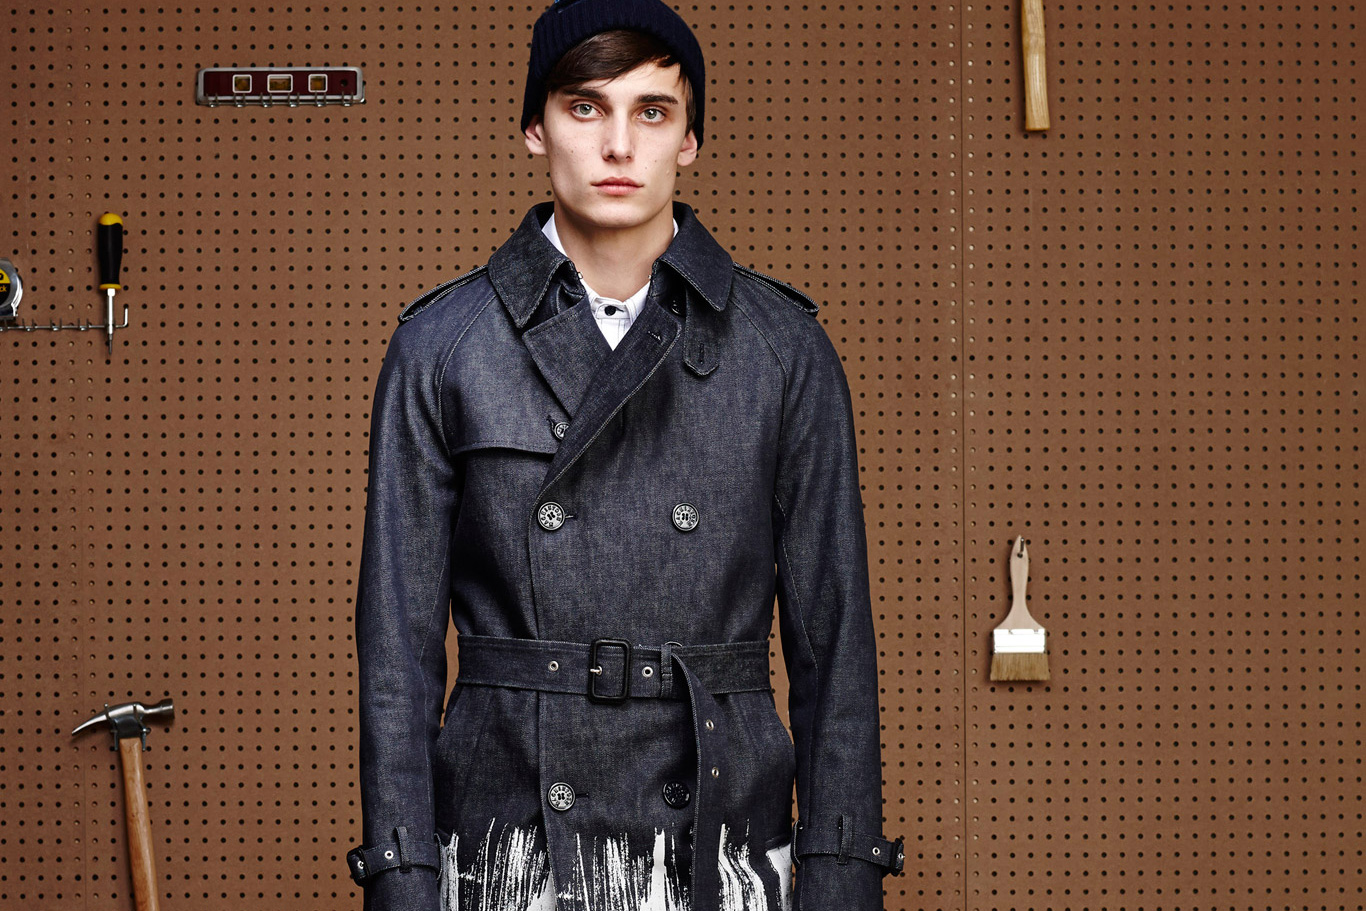 Band of Outsiders 2015 Fall/Winter Lookbook